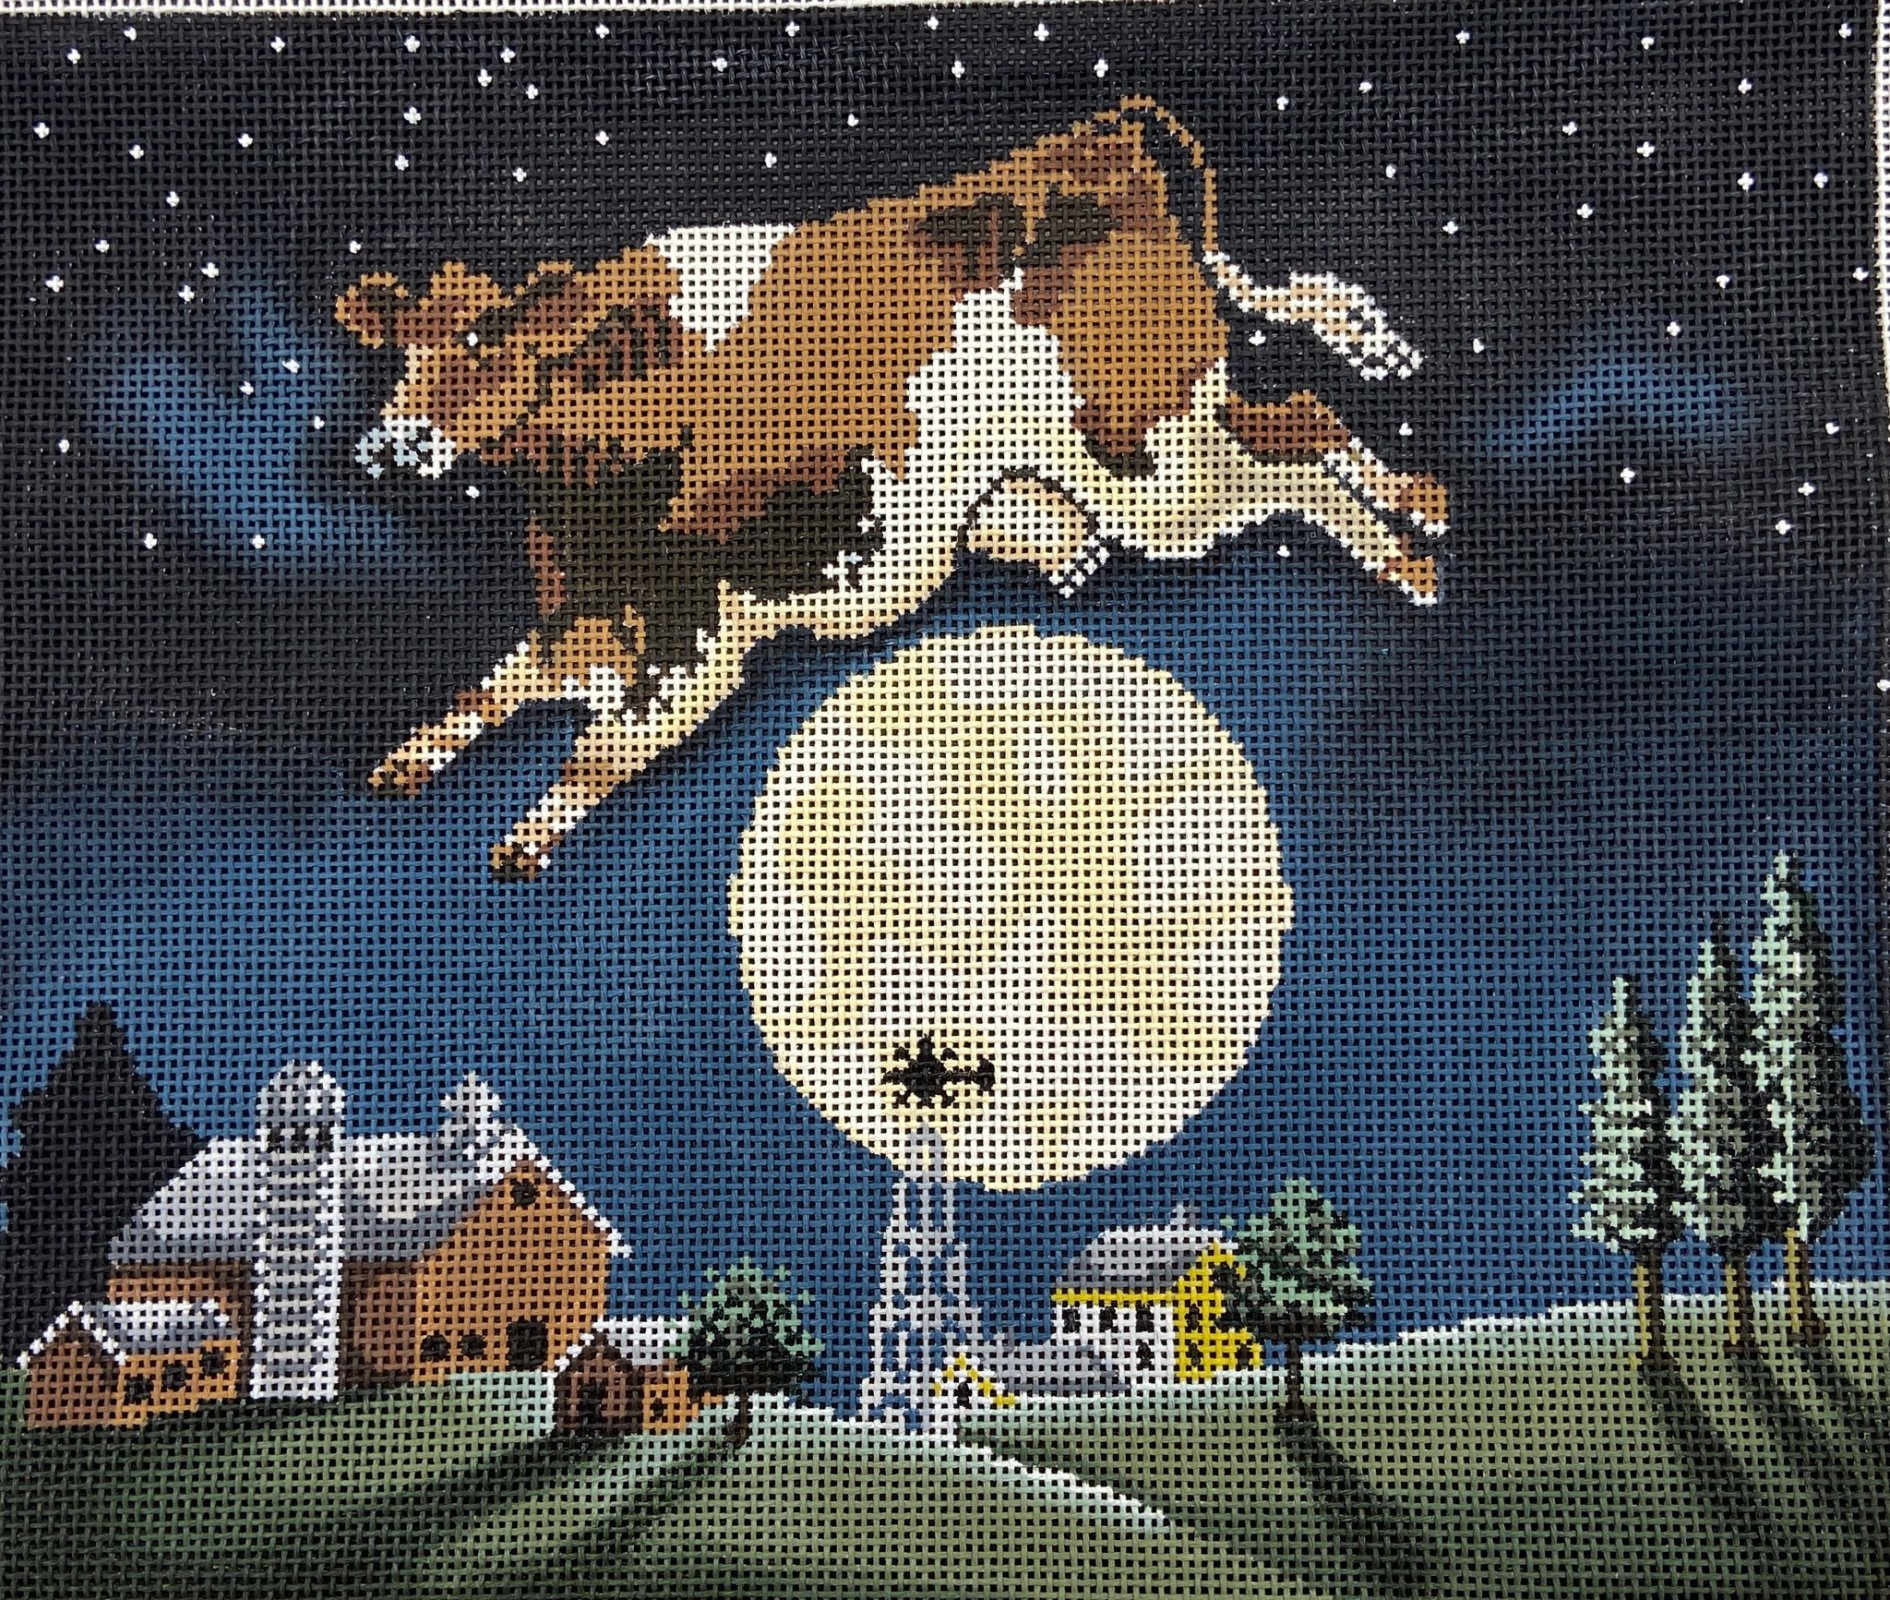 LH8021The Cow Jumped Over The Moon Cooker Oaks